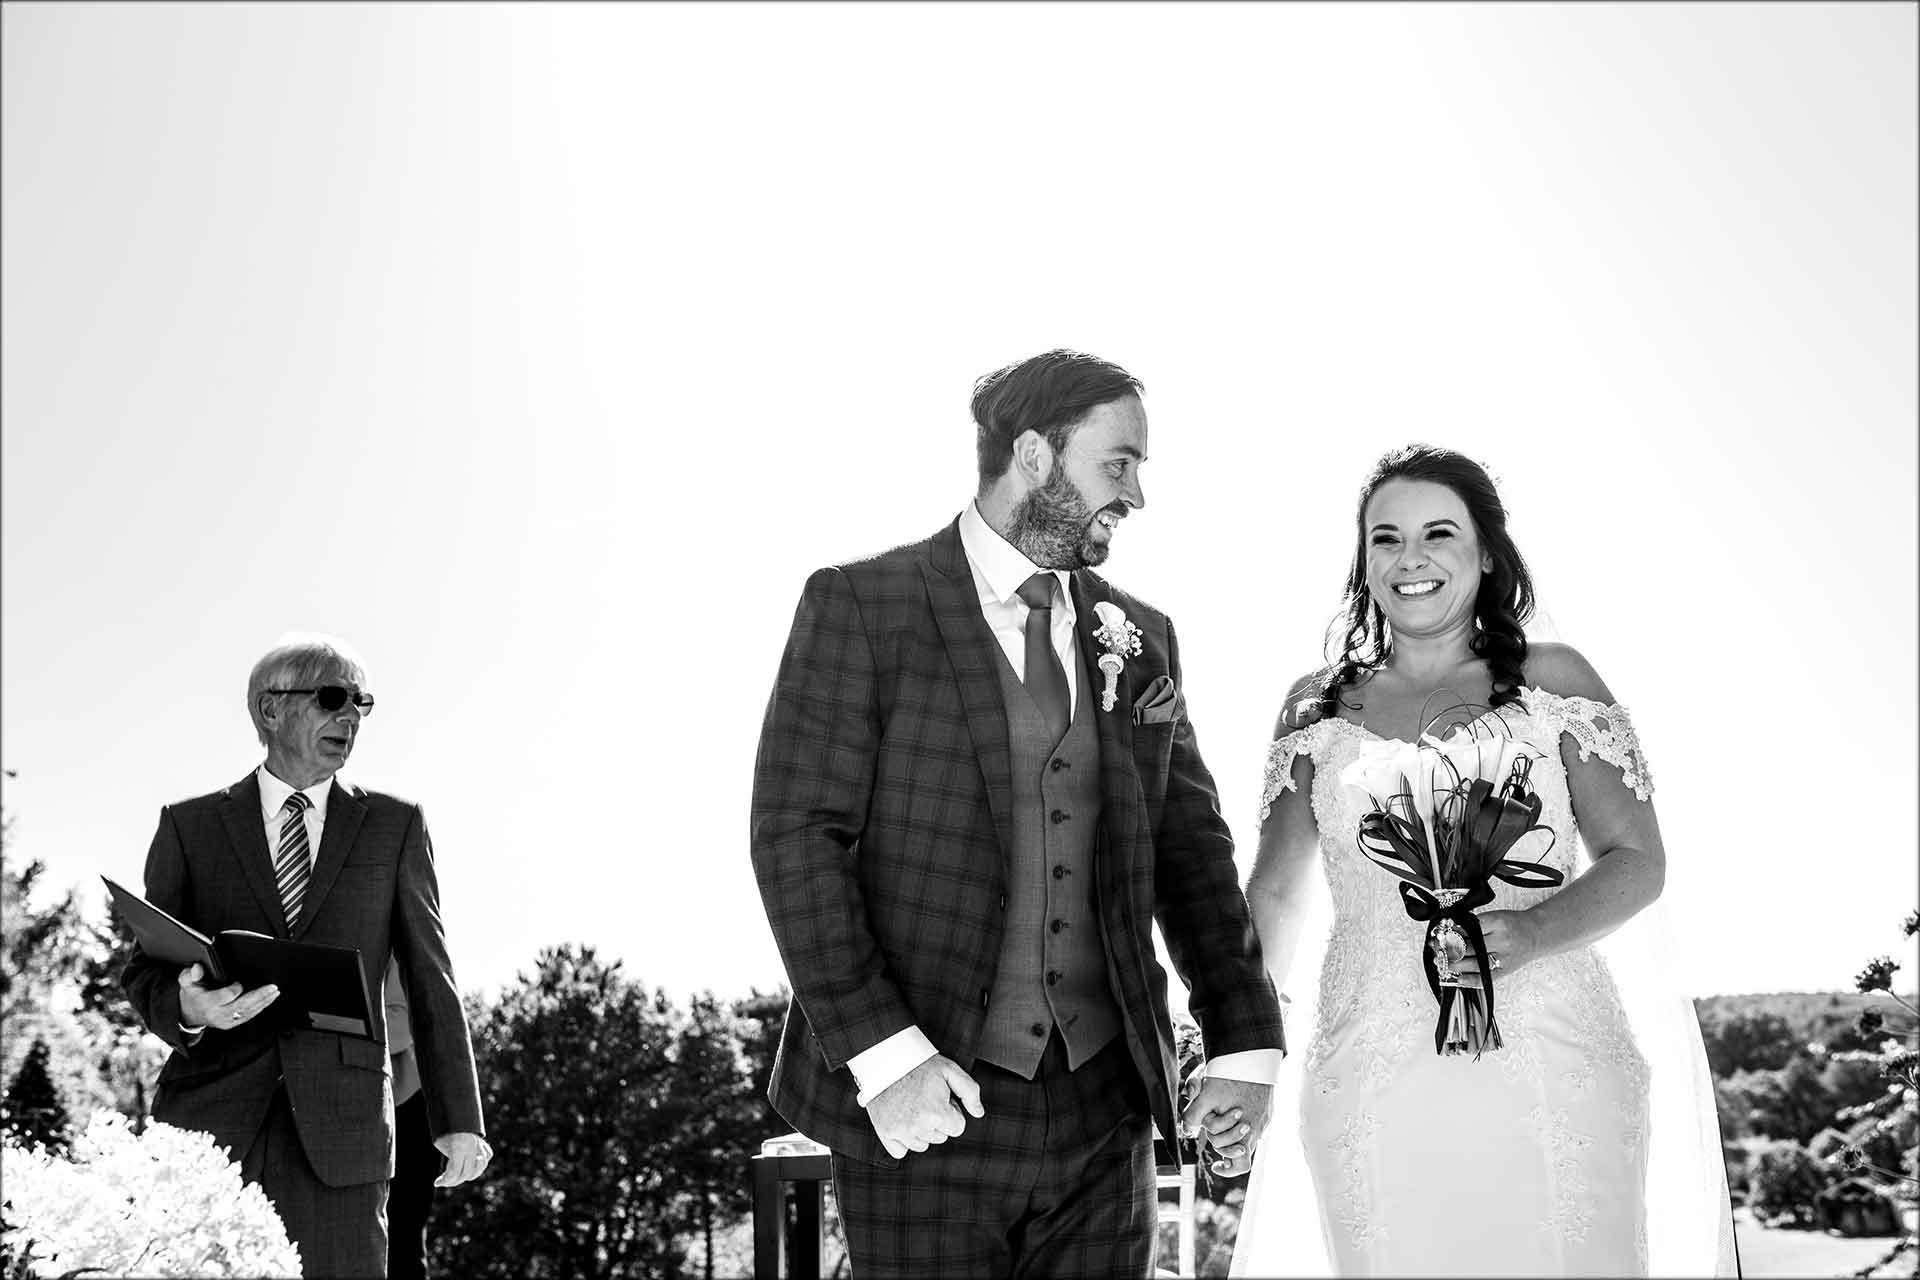 Bride and groom married at outdoor wedding ceremony